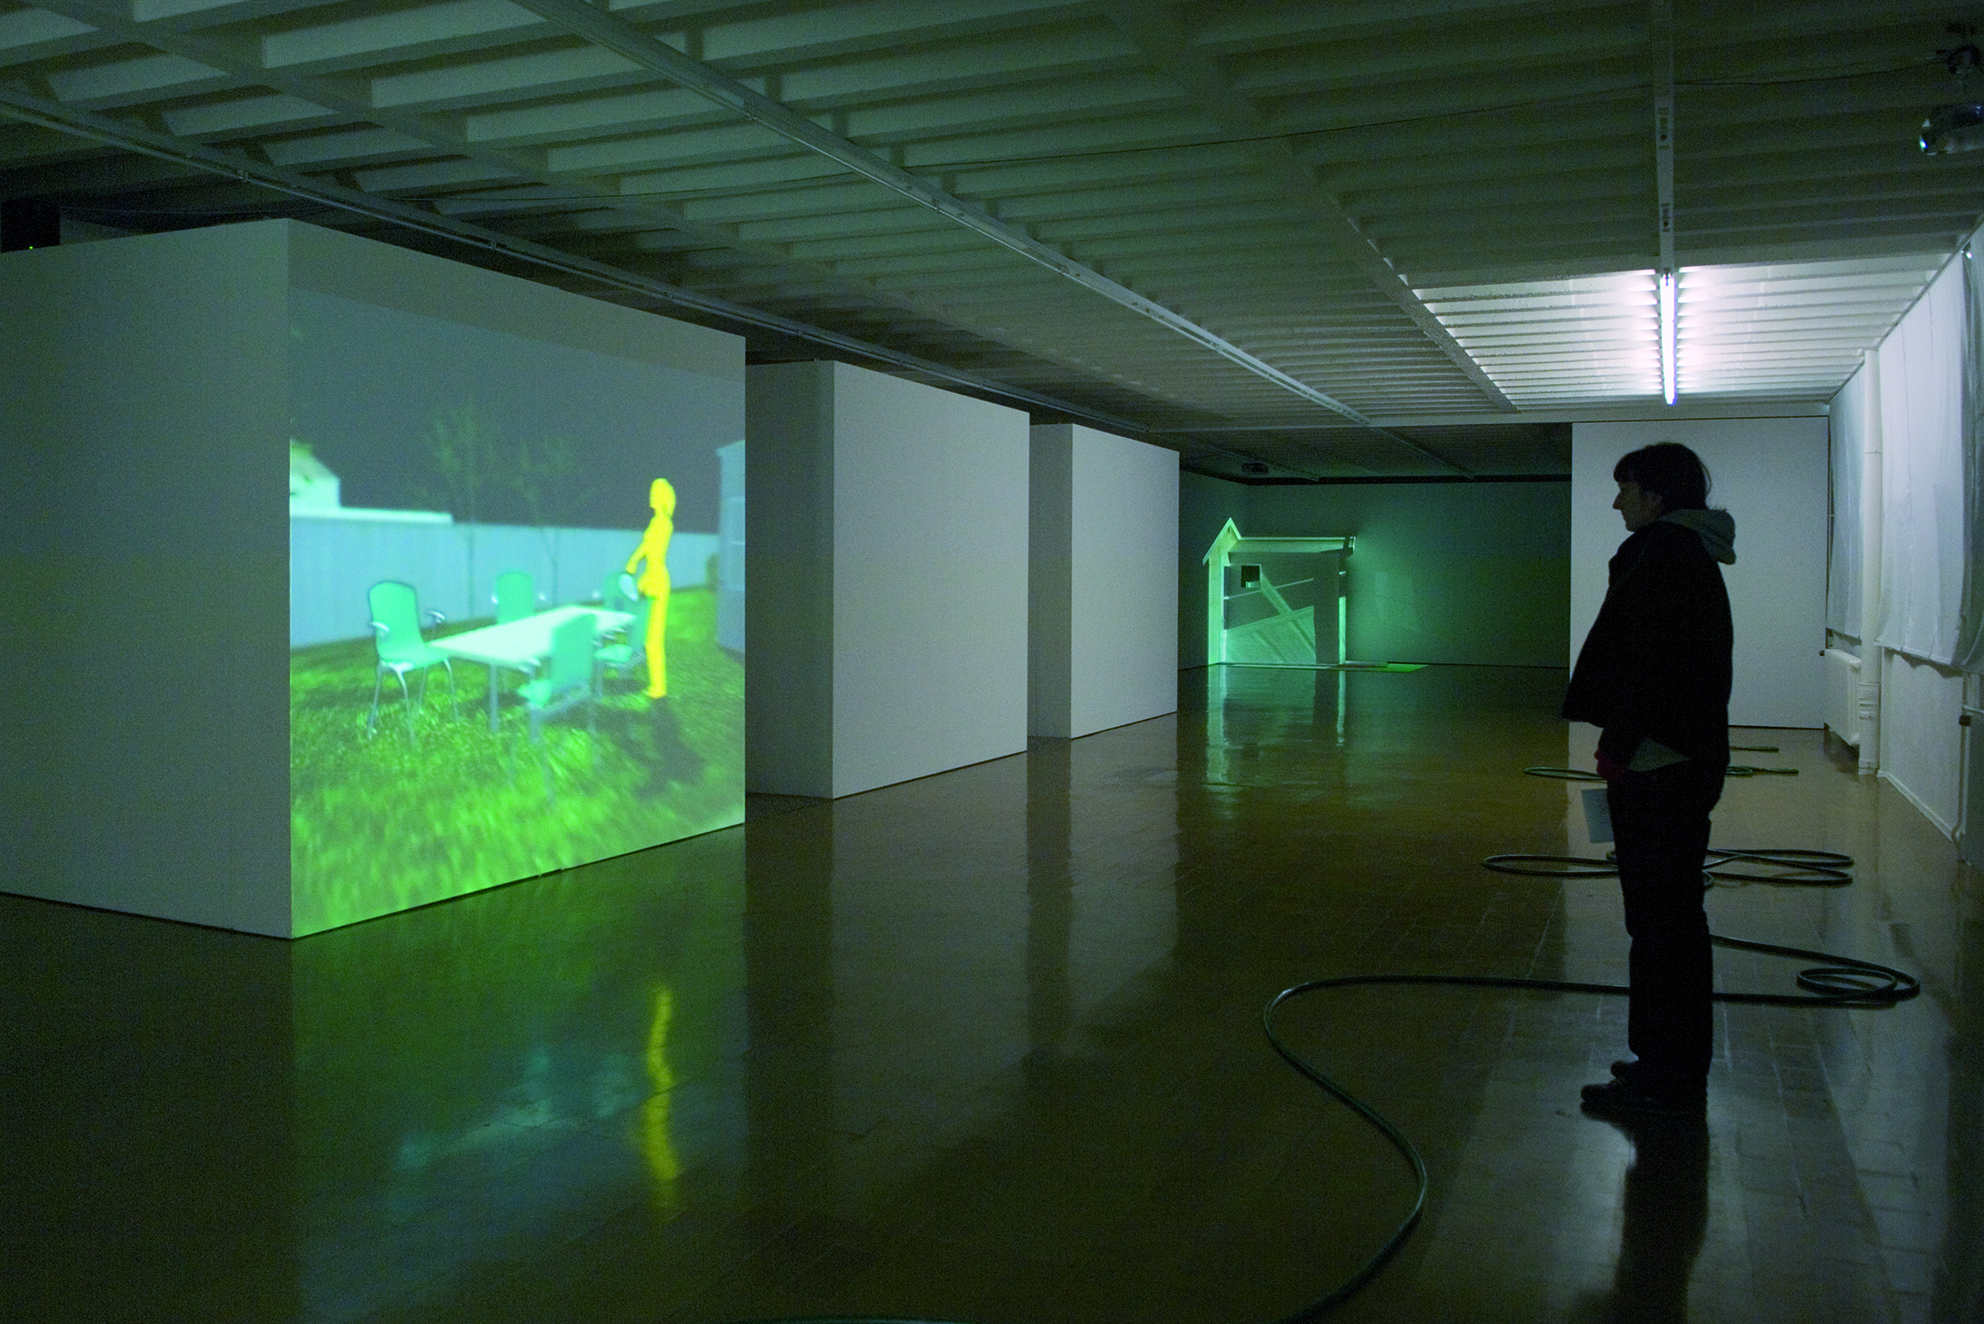 habitA, video SD, 4/3, 576i, loop, 2003, in collaboration with Swann Thommen, © René Rötheli